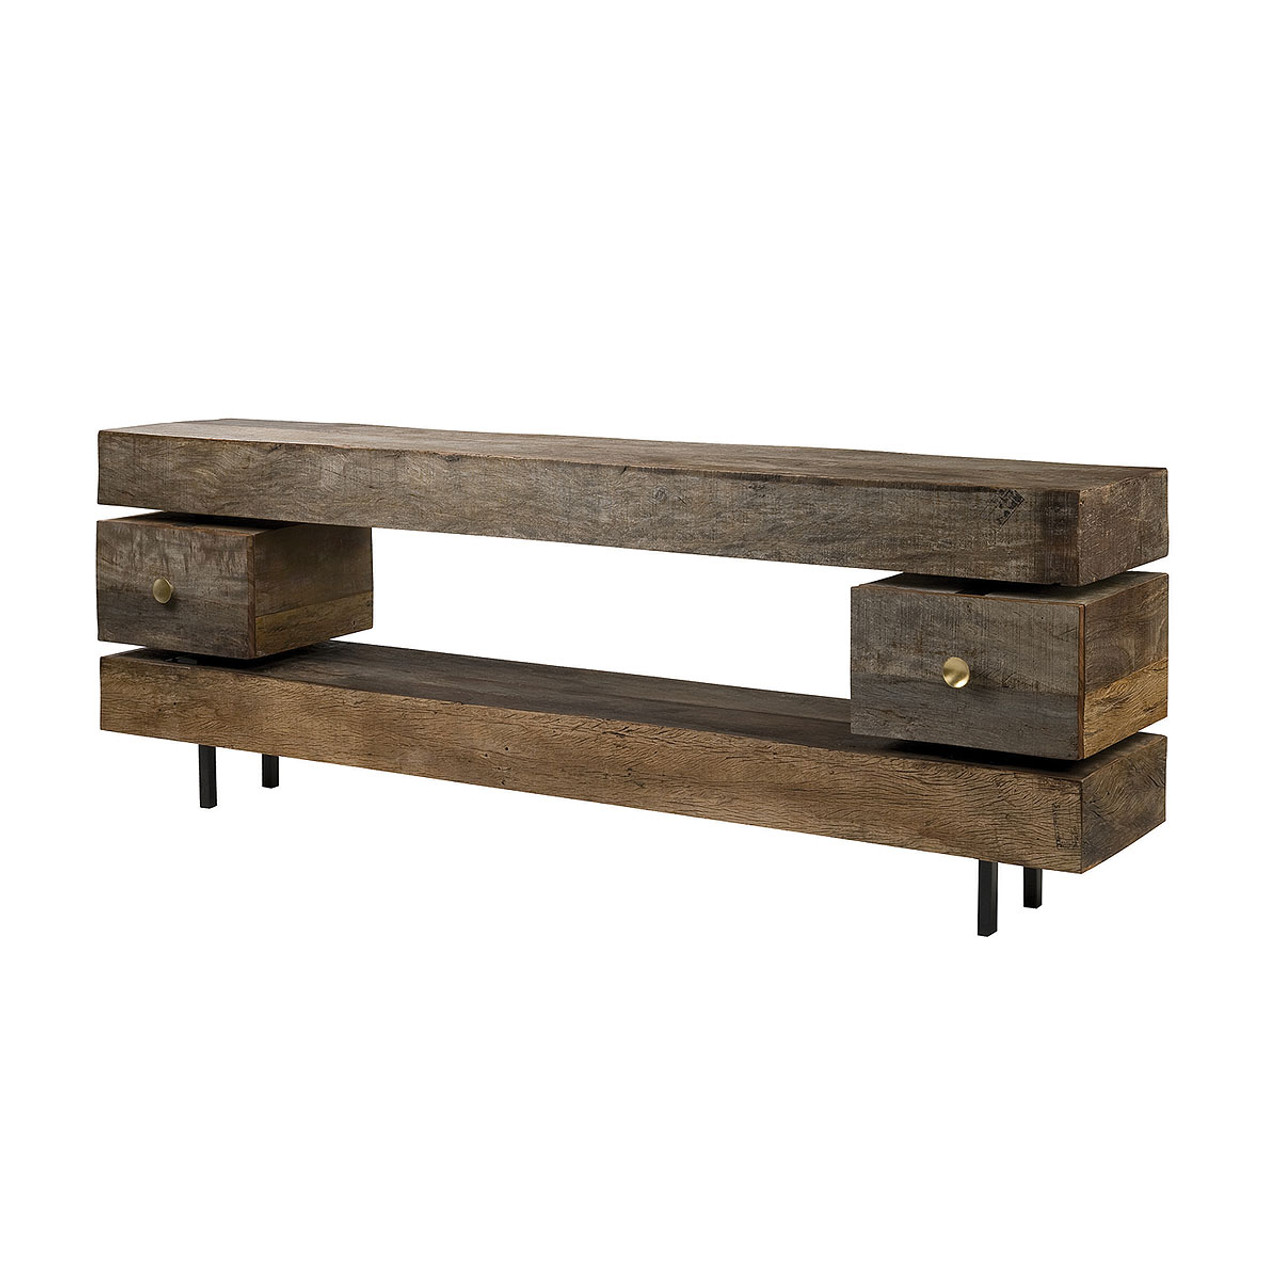 Charmant Dillon Reclaimed Wood Console Table